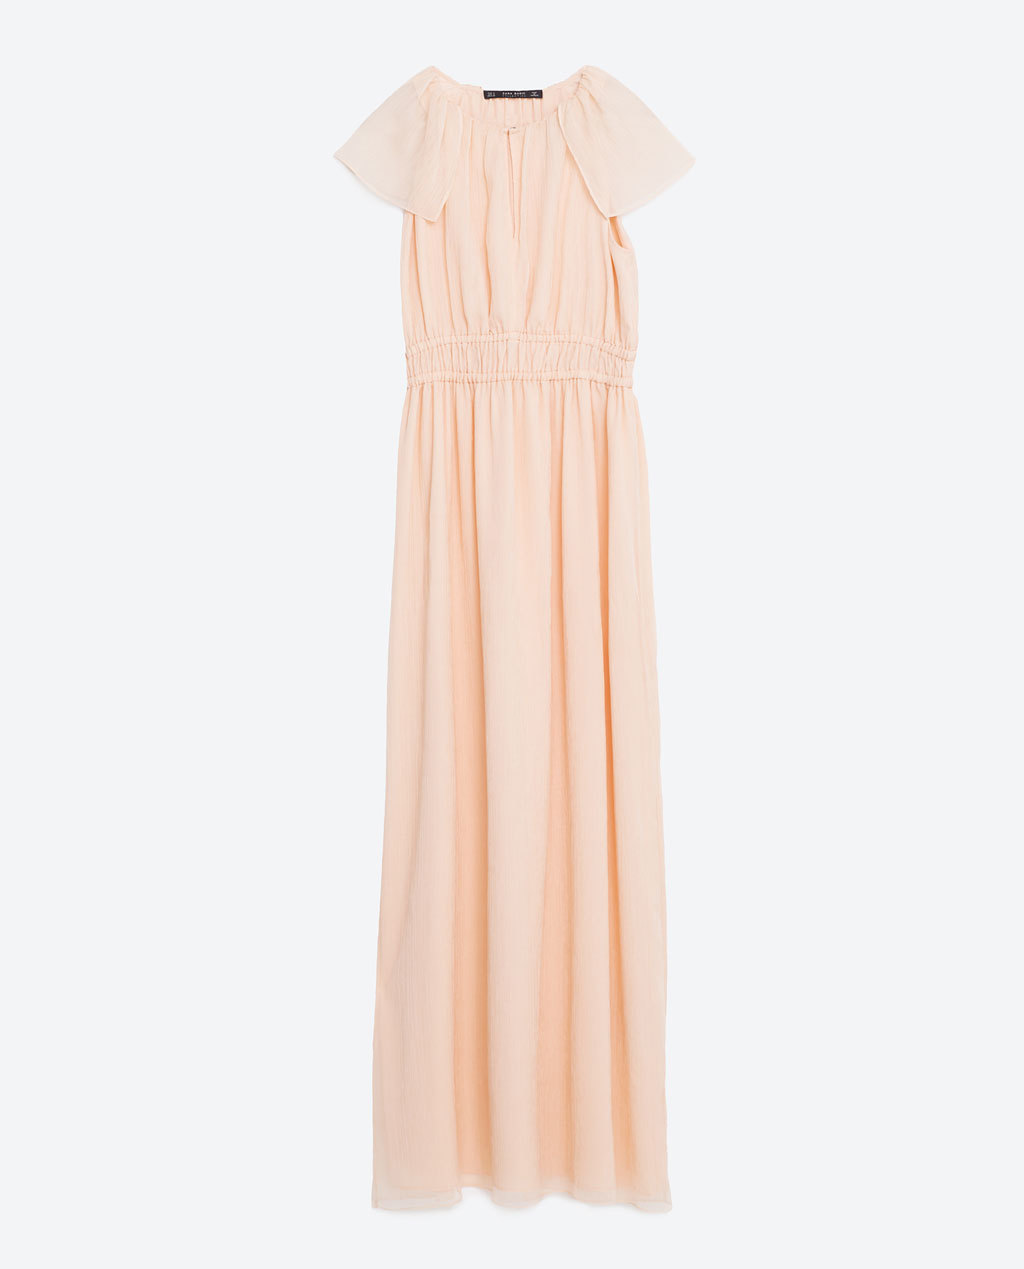 Long Dress - pattern: plain; style: maxi dress; length: ankle length; predominant colour: blush; occasions: evening; fit: body skimming; fibres: polyester/polyamide - 100%; neckline: crew; sleeve length: short sleeve; sleeve style: standard; pattern type: fabric; texture group: other - light to midweight; season: s/s 2016; wardrobe: event